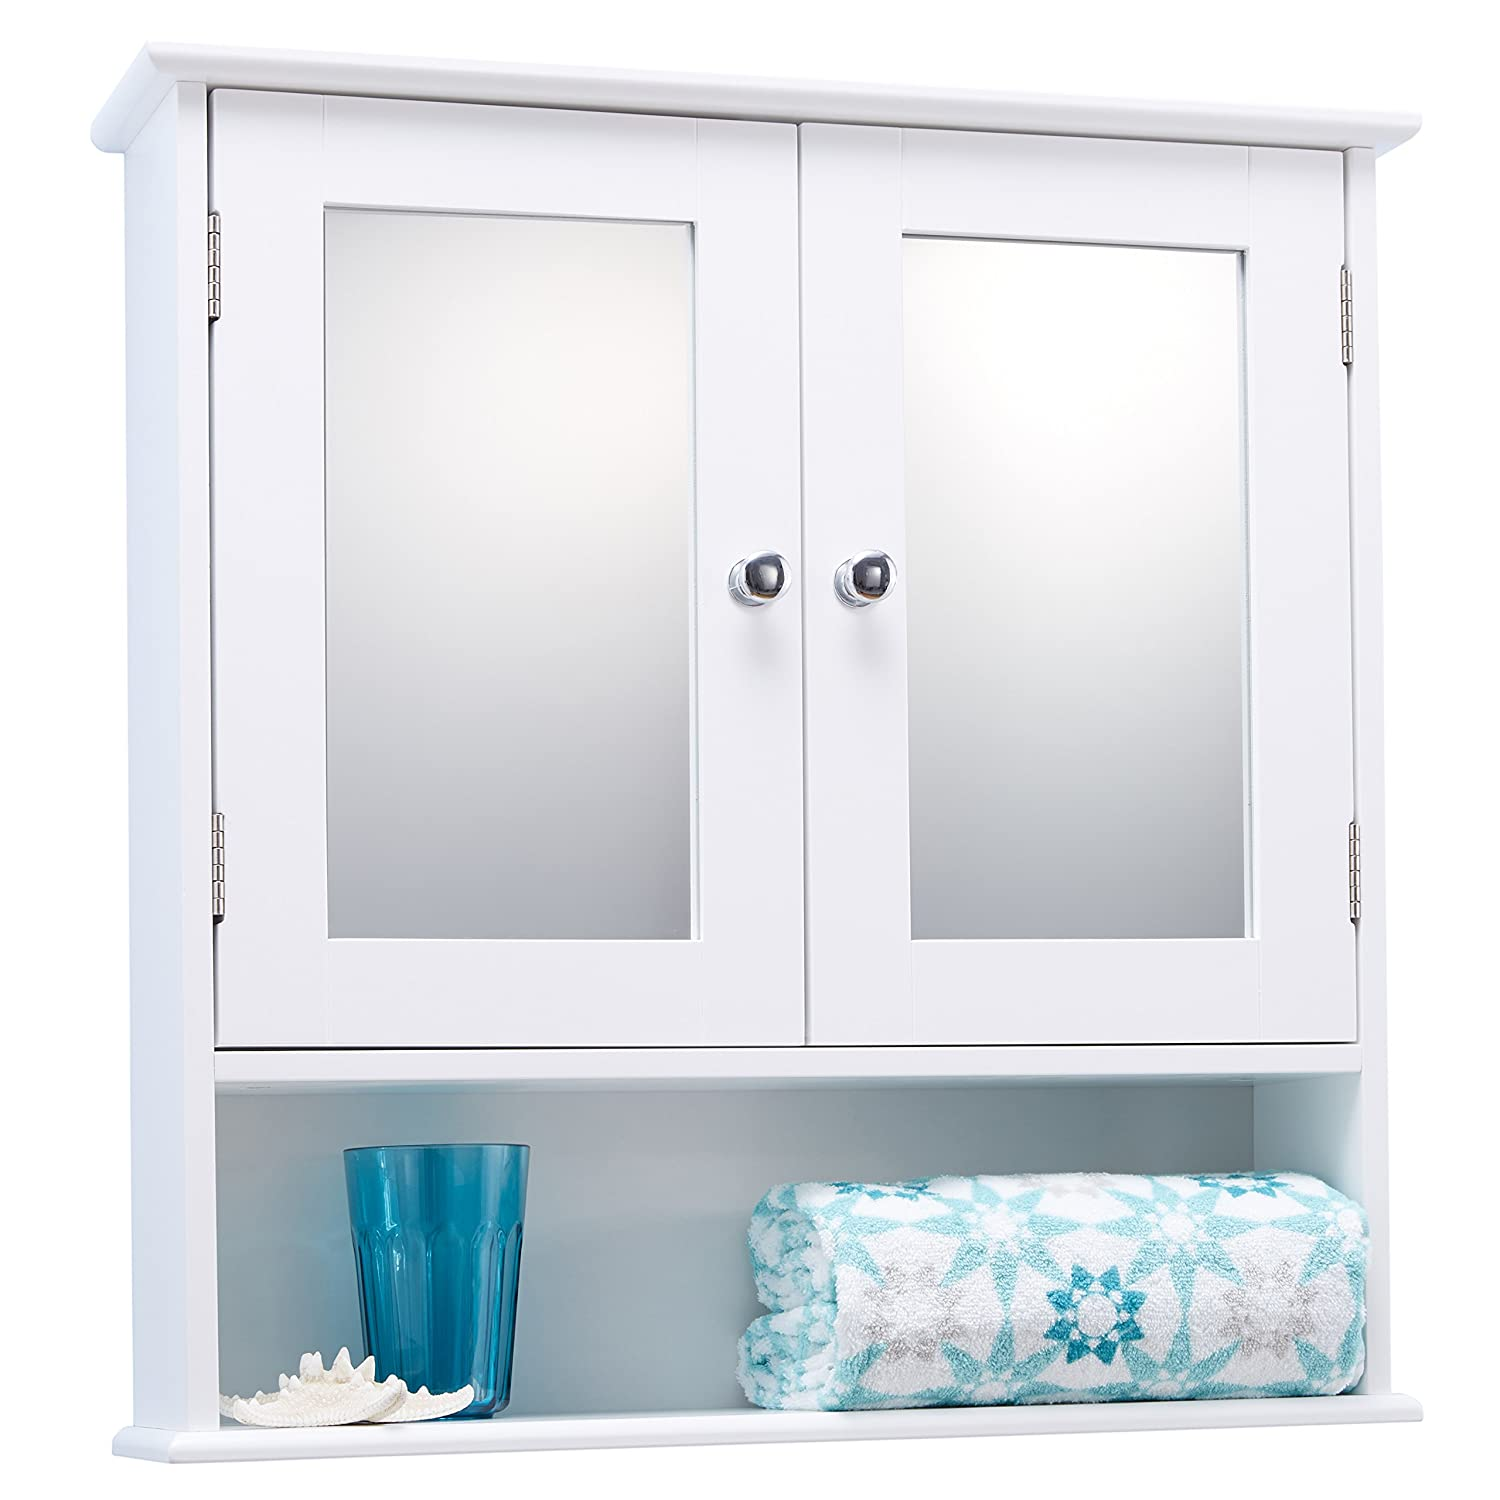 Double Door White Bathroom Mirror Cabinet Mirrored Bathroom